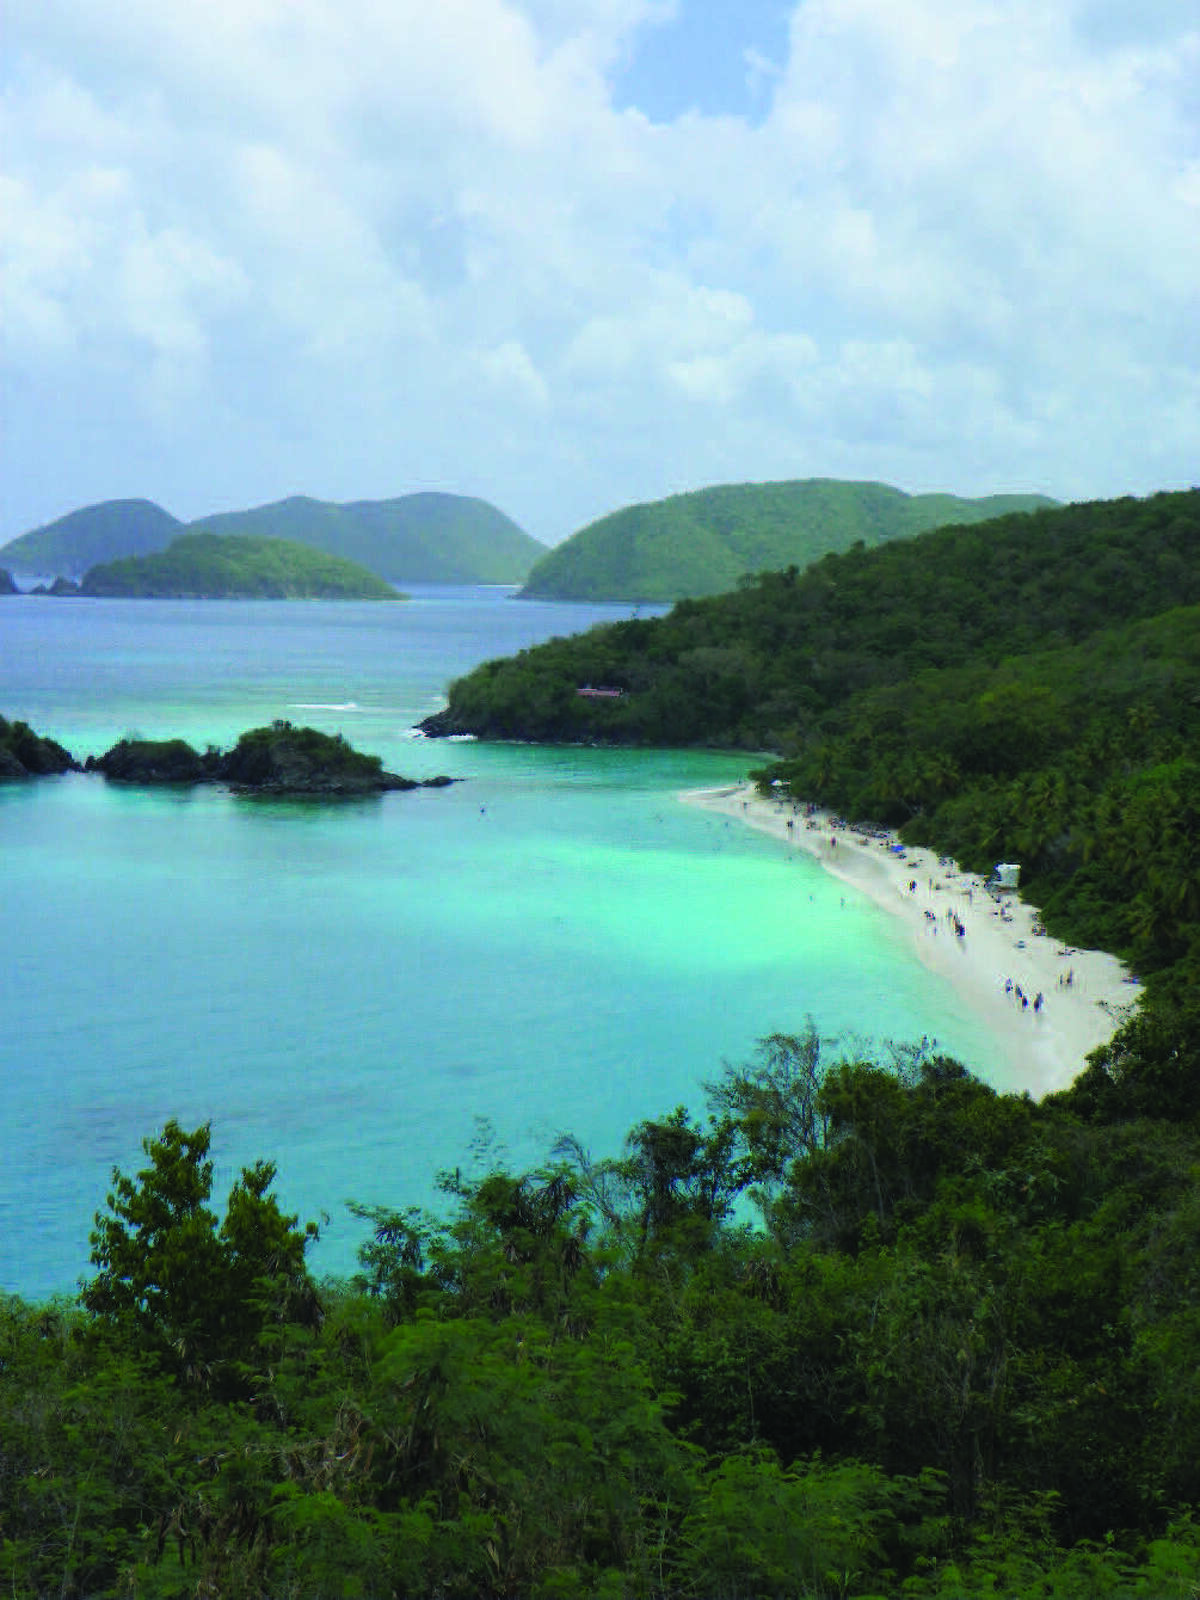 The turquoise water and white sandy beach of Trunk Bay can be enjoyed up close or from this overlook. Trunk Bay has one of the most popular beaches on the island of St. John. Below: Tropical plants surround the door to the Calypso Del Sol rental home in St. John.